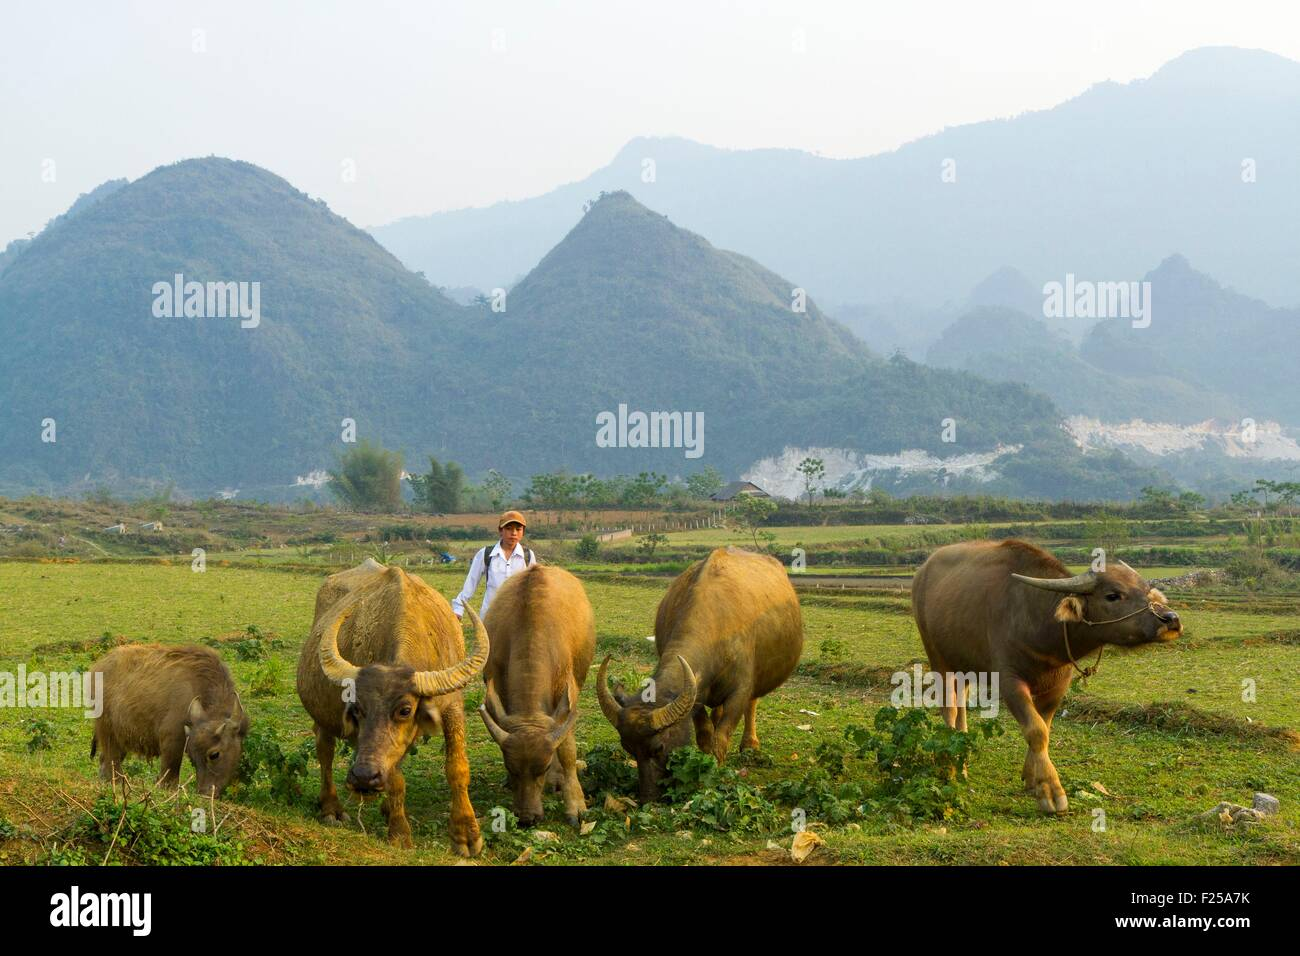 My Lai Vietnam Stock Photos & My Lai Vietnam Stock Images - Alamy